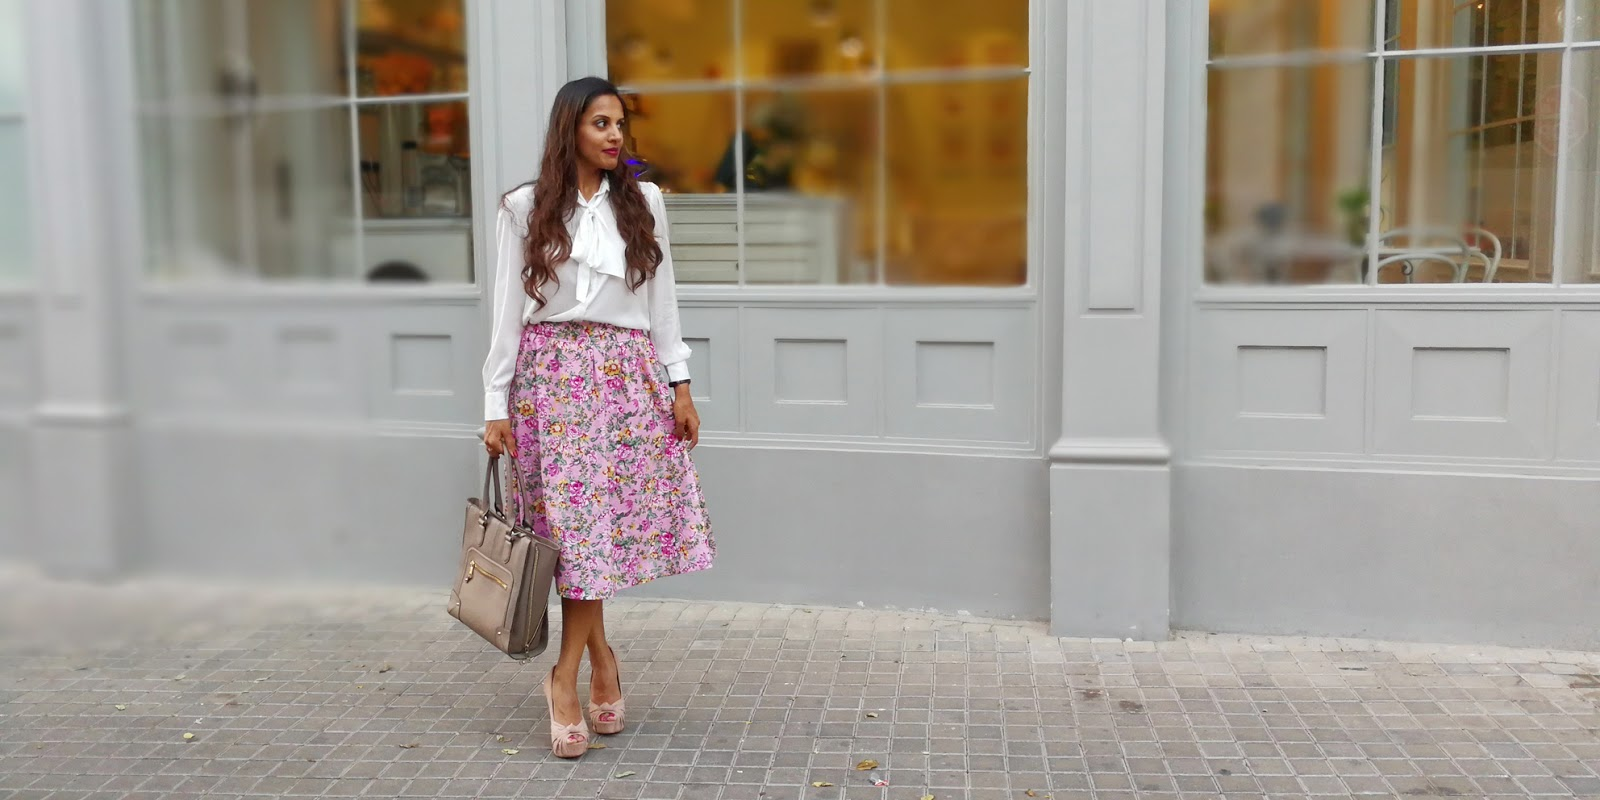 White + Pink Floral and Plans for The Long Eid Weekend